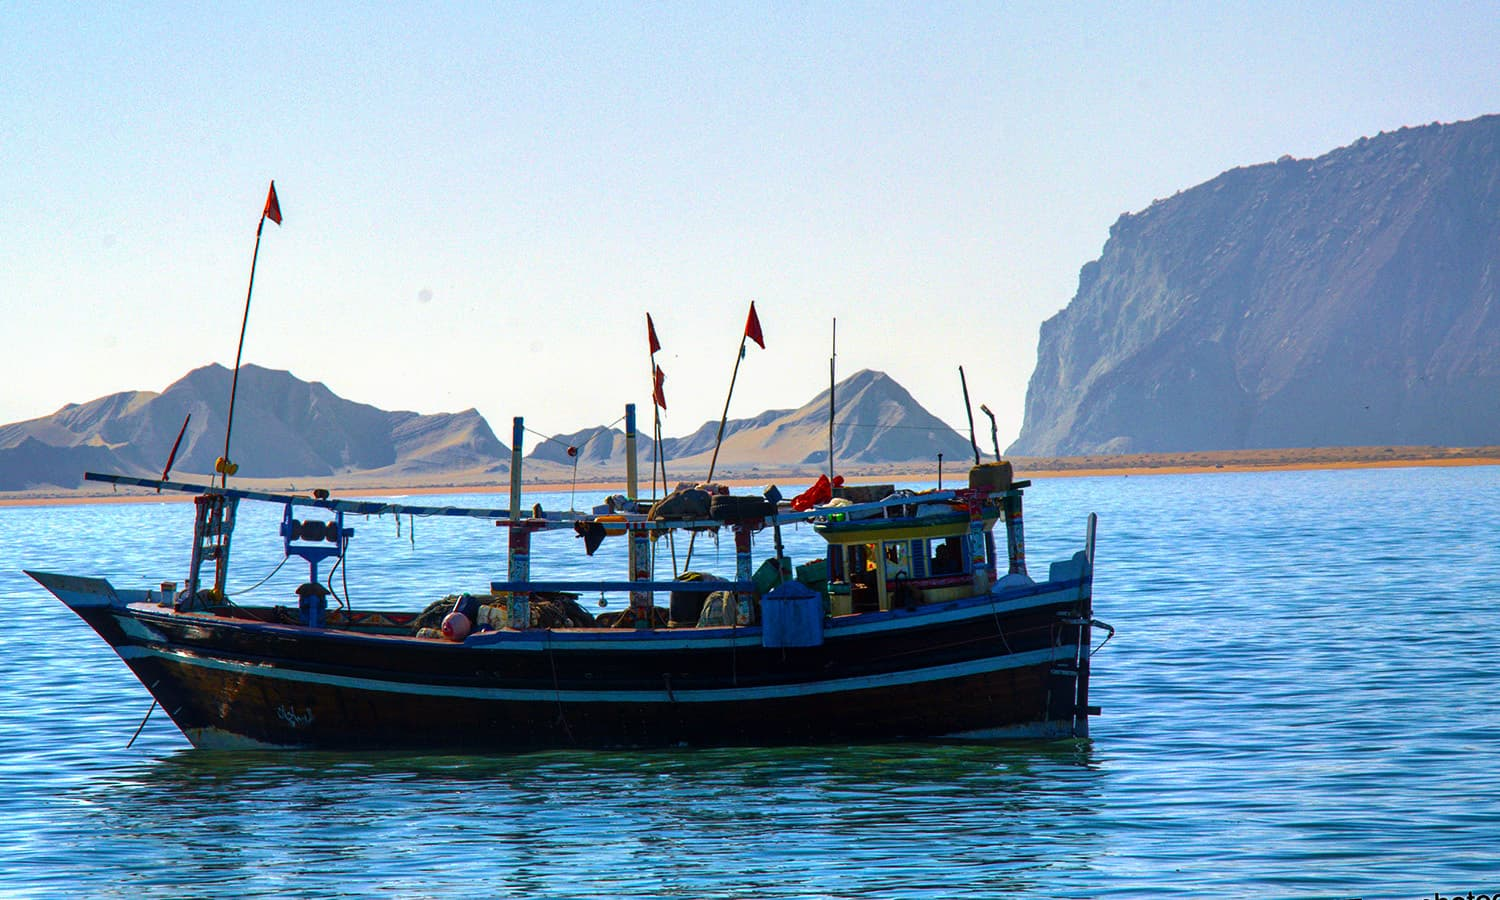 One of the boats of campers visiting Astola island.